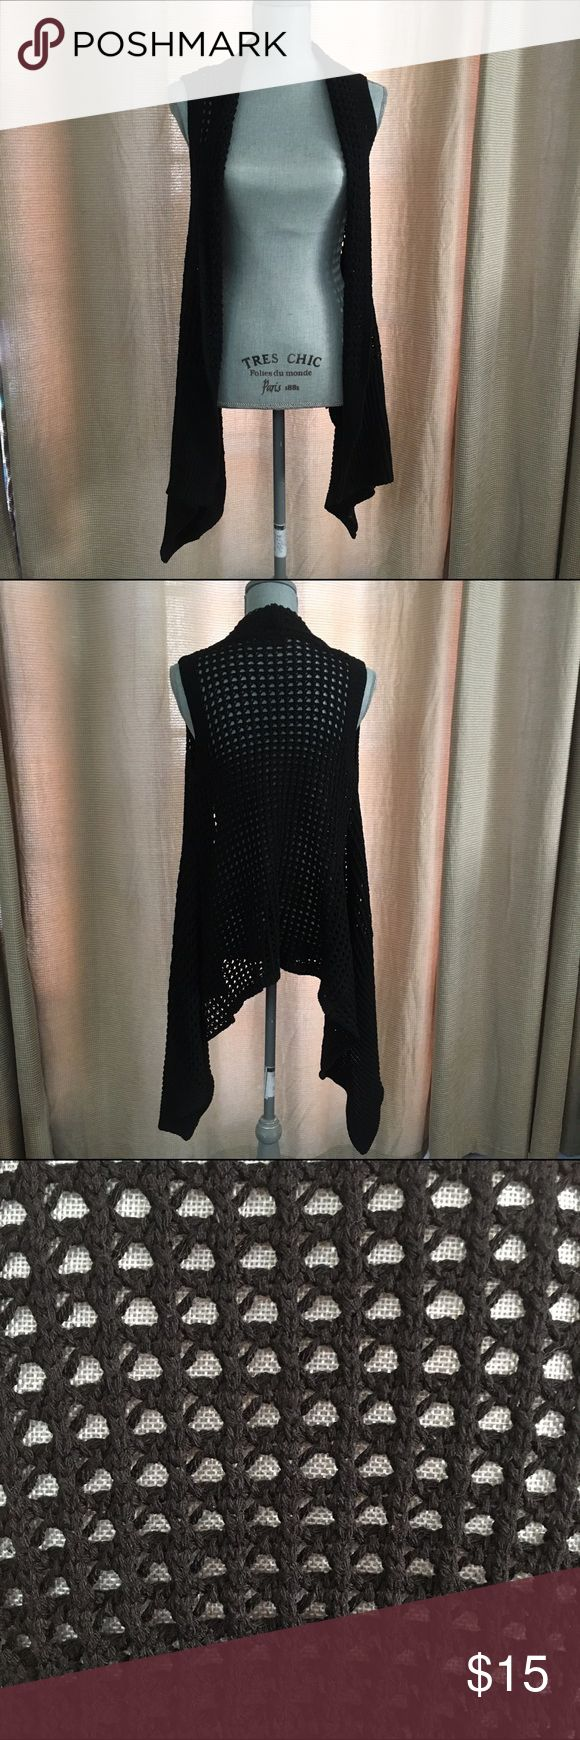 Black Knit Maxi Vest Black Knit Maxi Vest. As is. In perfect condition. Perfect for fall or festival wear. Jackets & Coats Vests